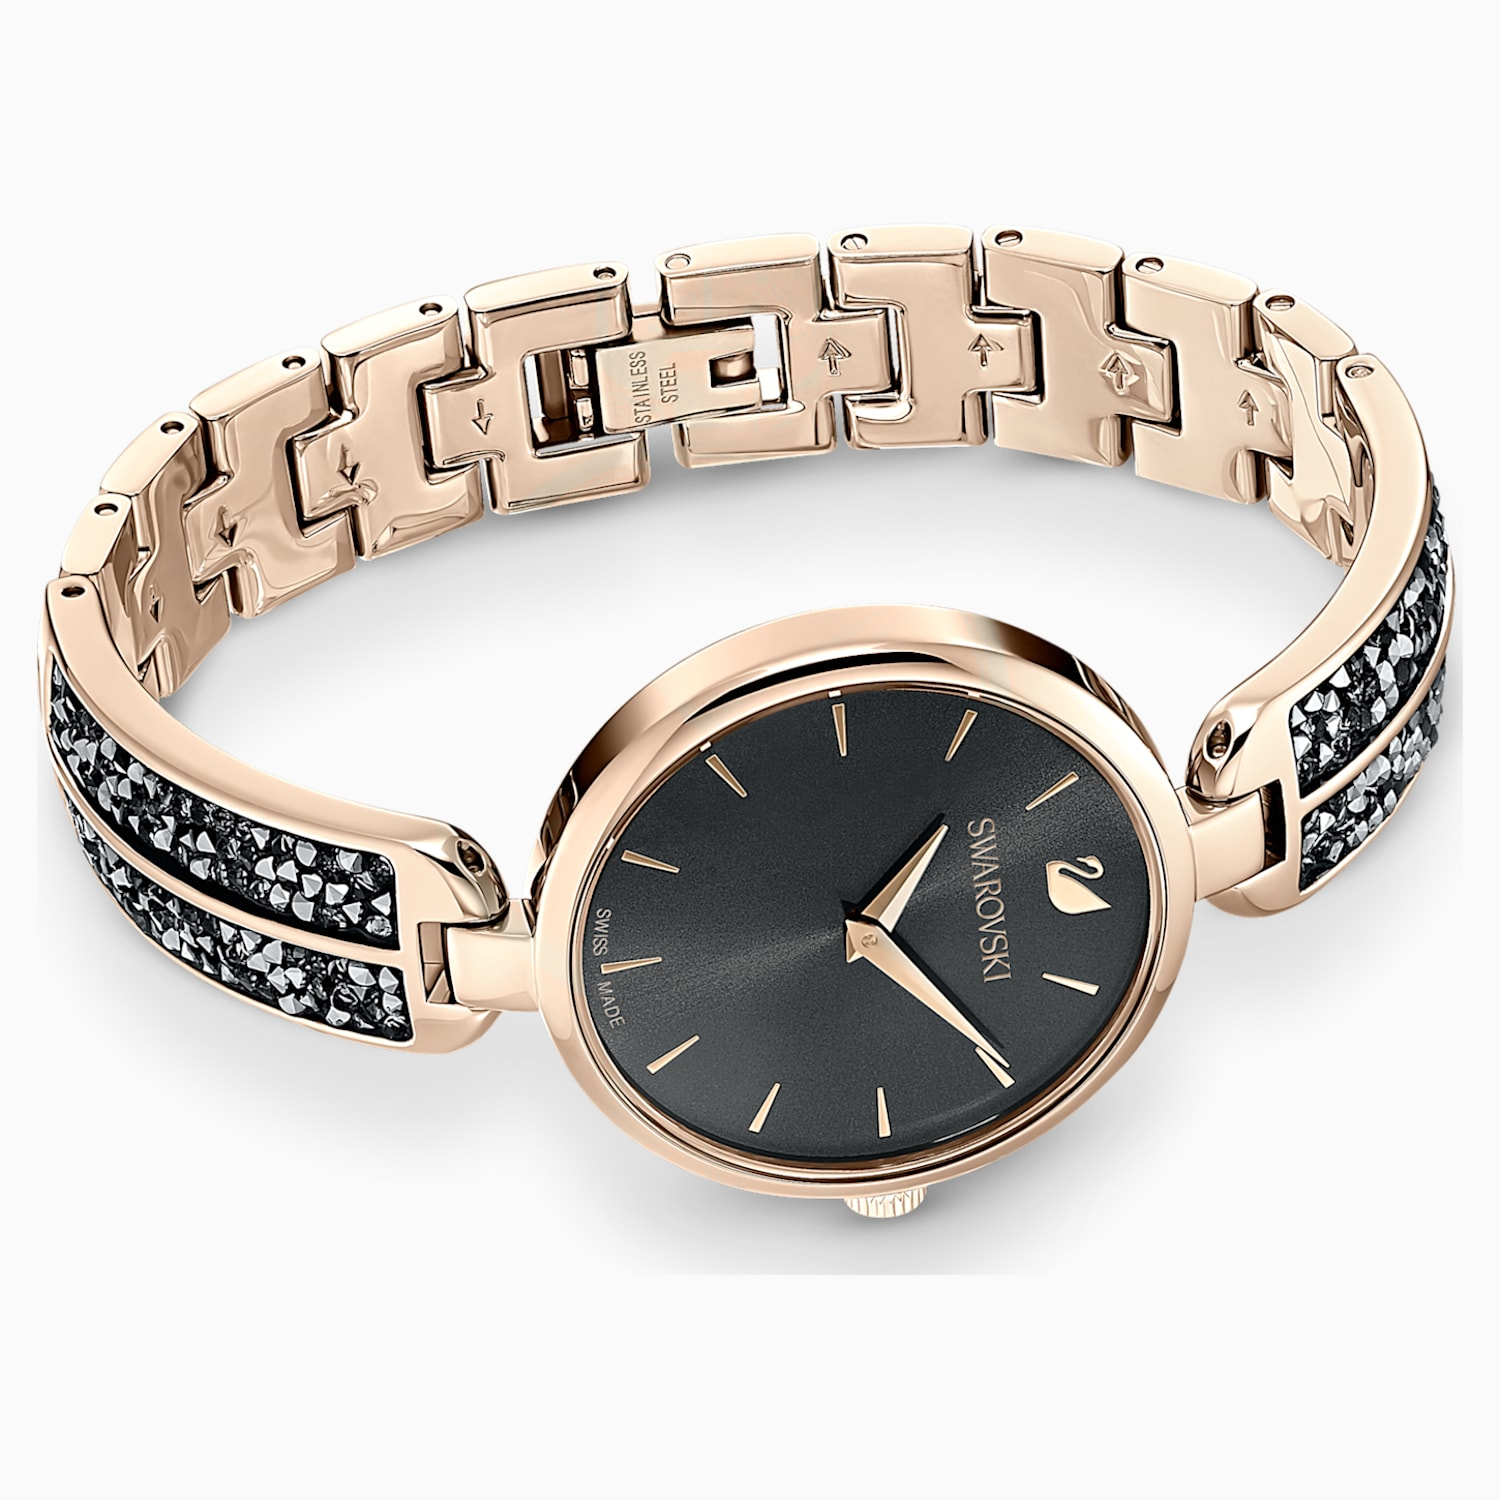 Dream Rock Uhr, Metallarmband, grau, champagne vergoldetes PVD Finish